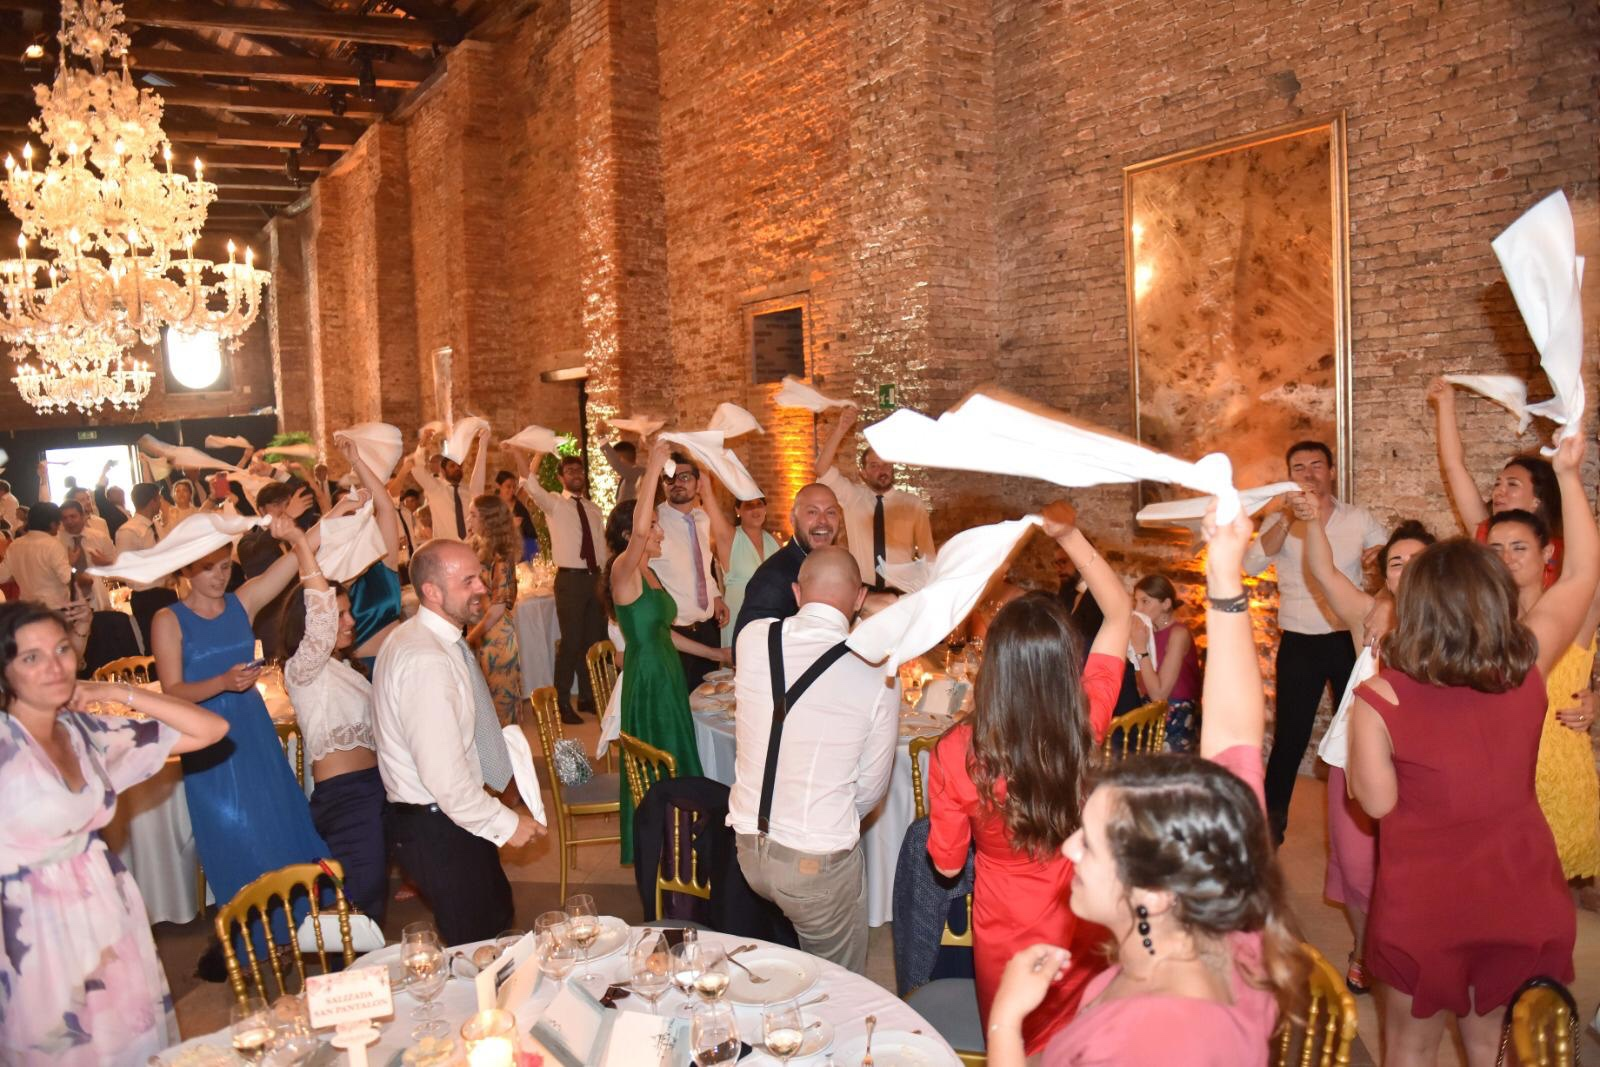 Guests singing and waving their napkins, Napoli style at Giulia and Carlo's wedding. Photo: Mirco Toffolo.